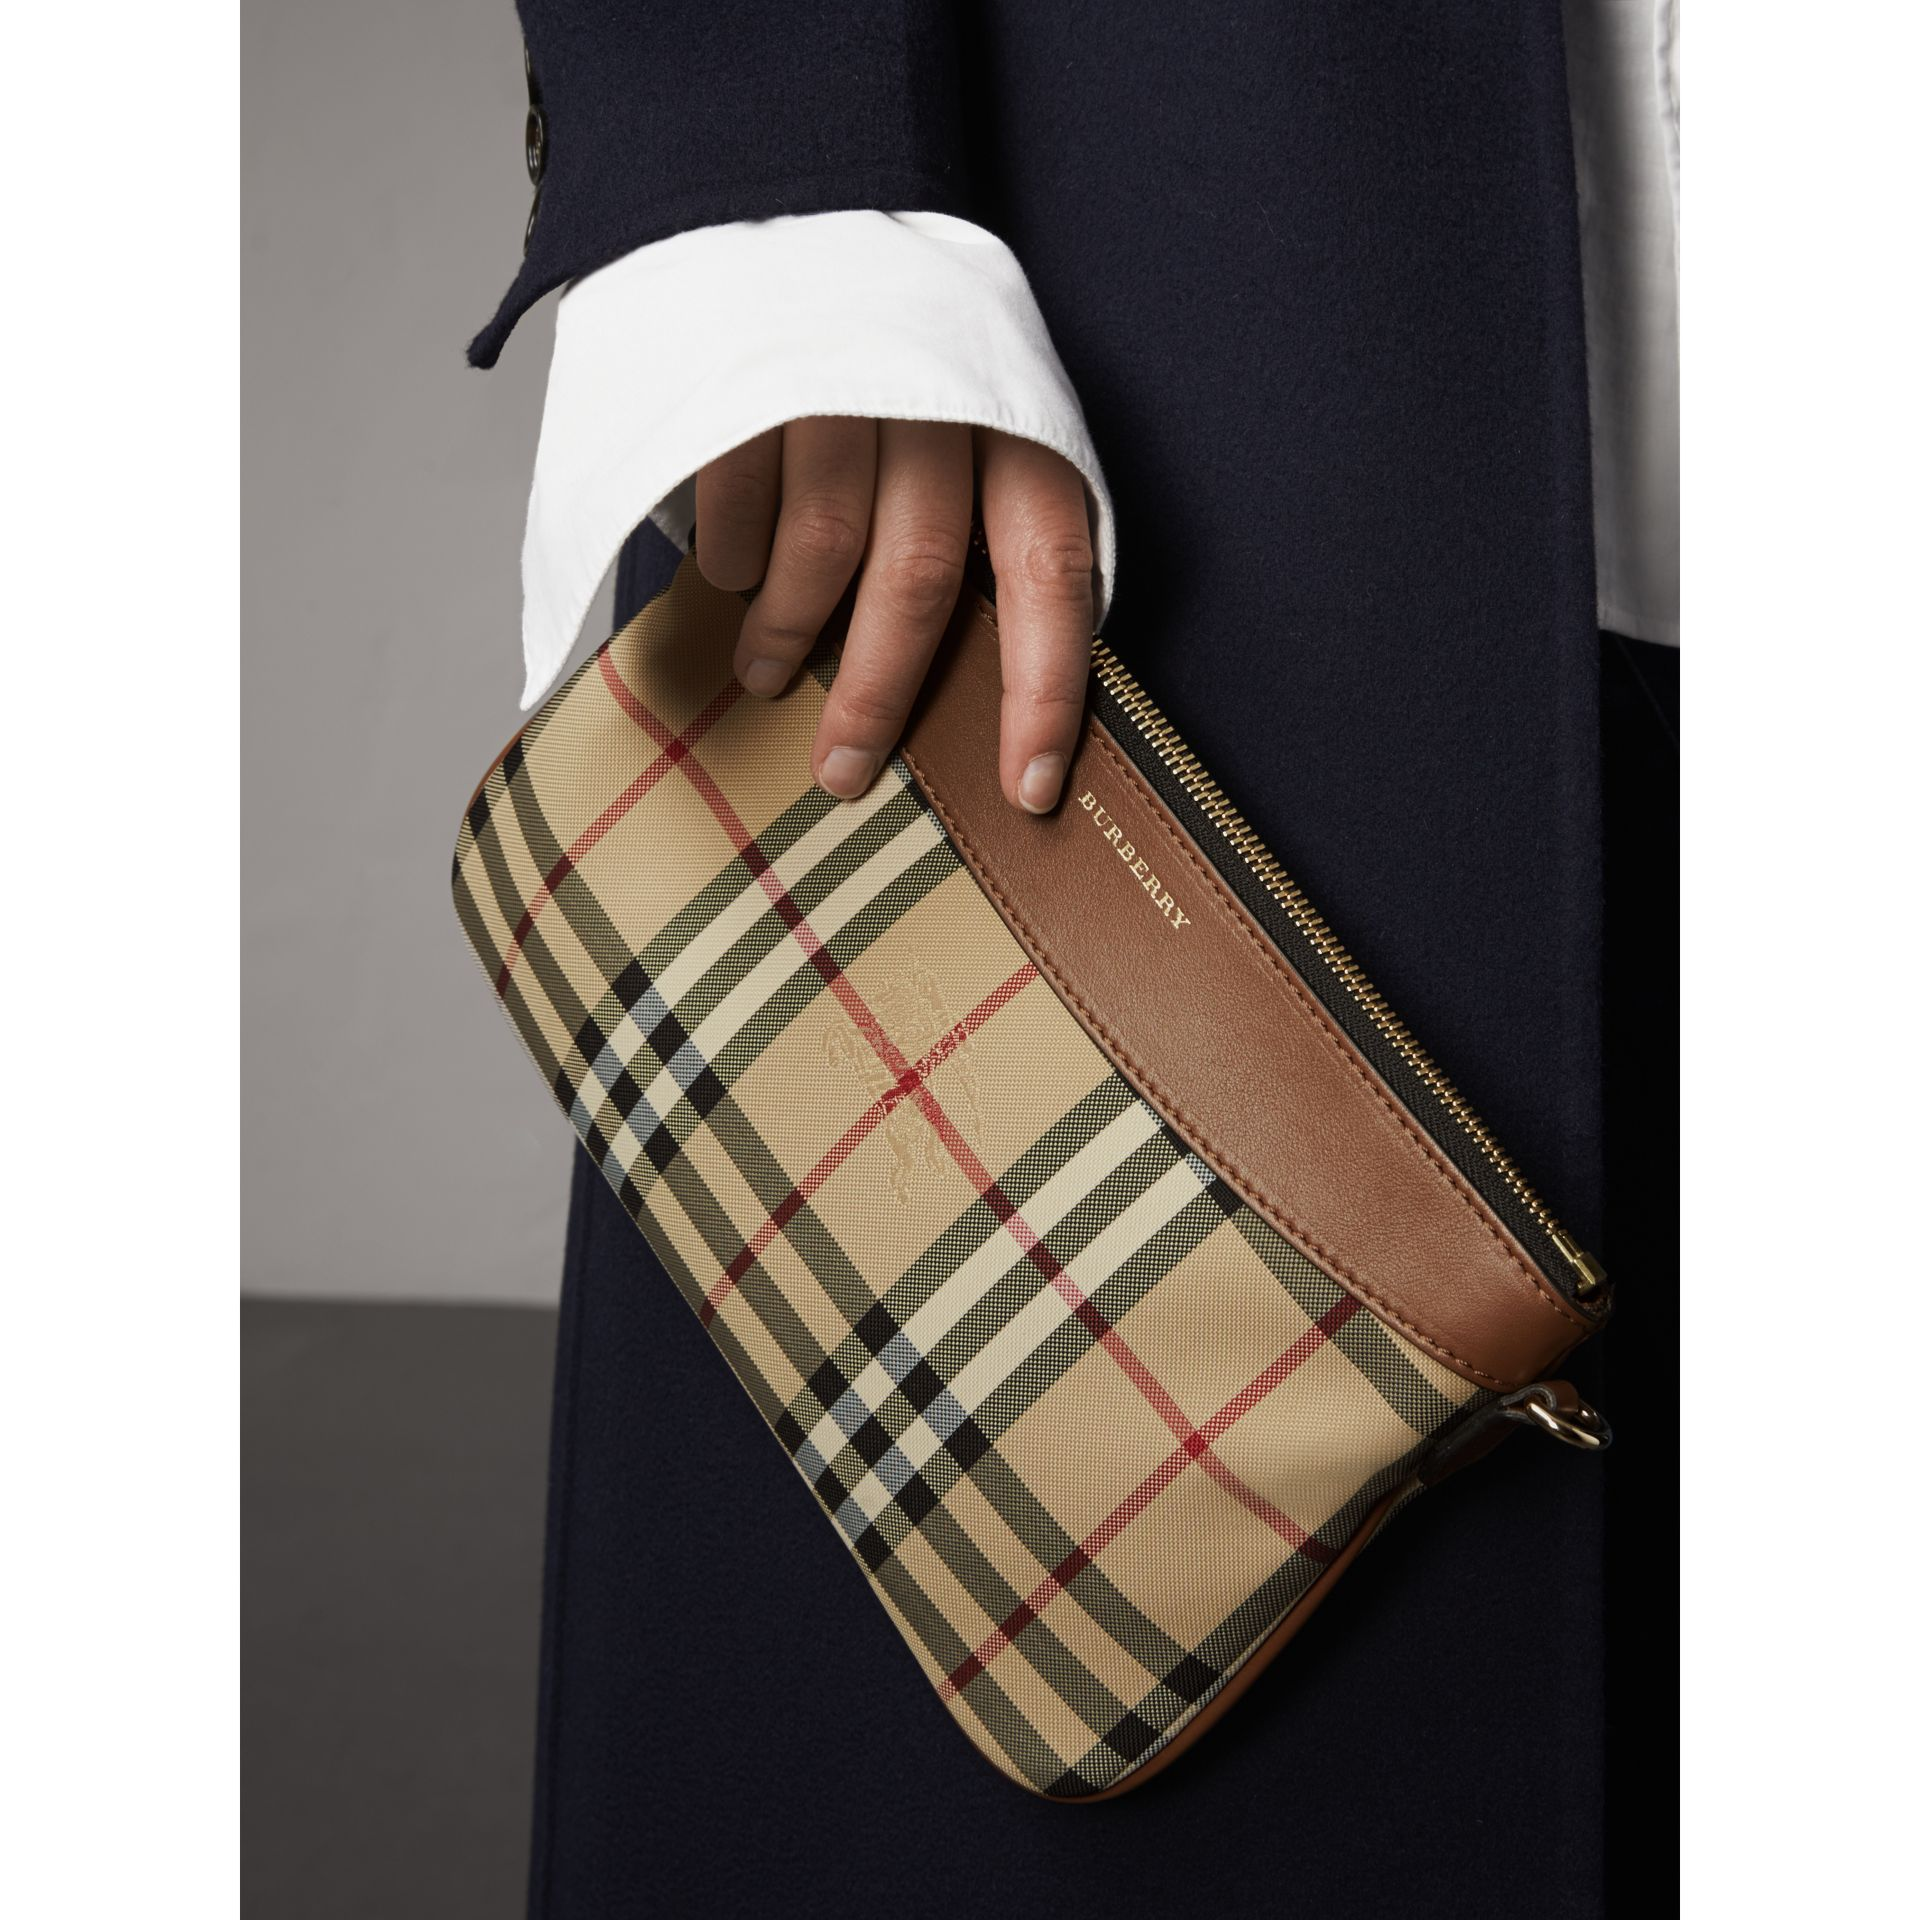 Horseferry Check and Leather Clutch Bag in Tan - Women | Burberry Singapore - gallery image 4